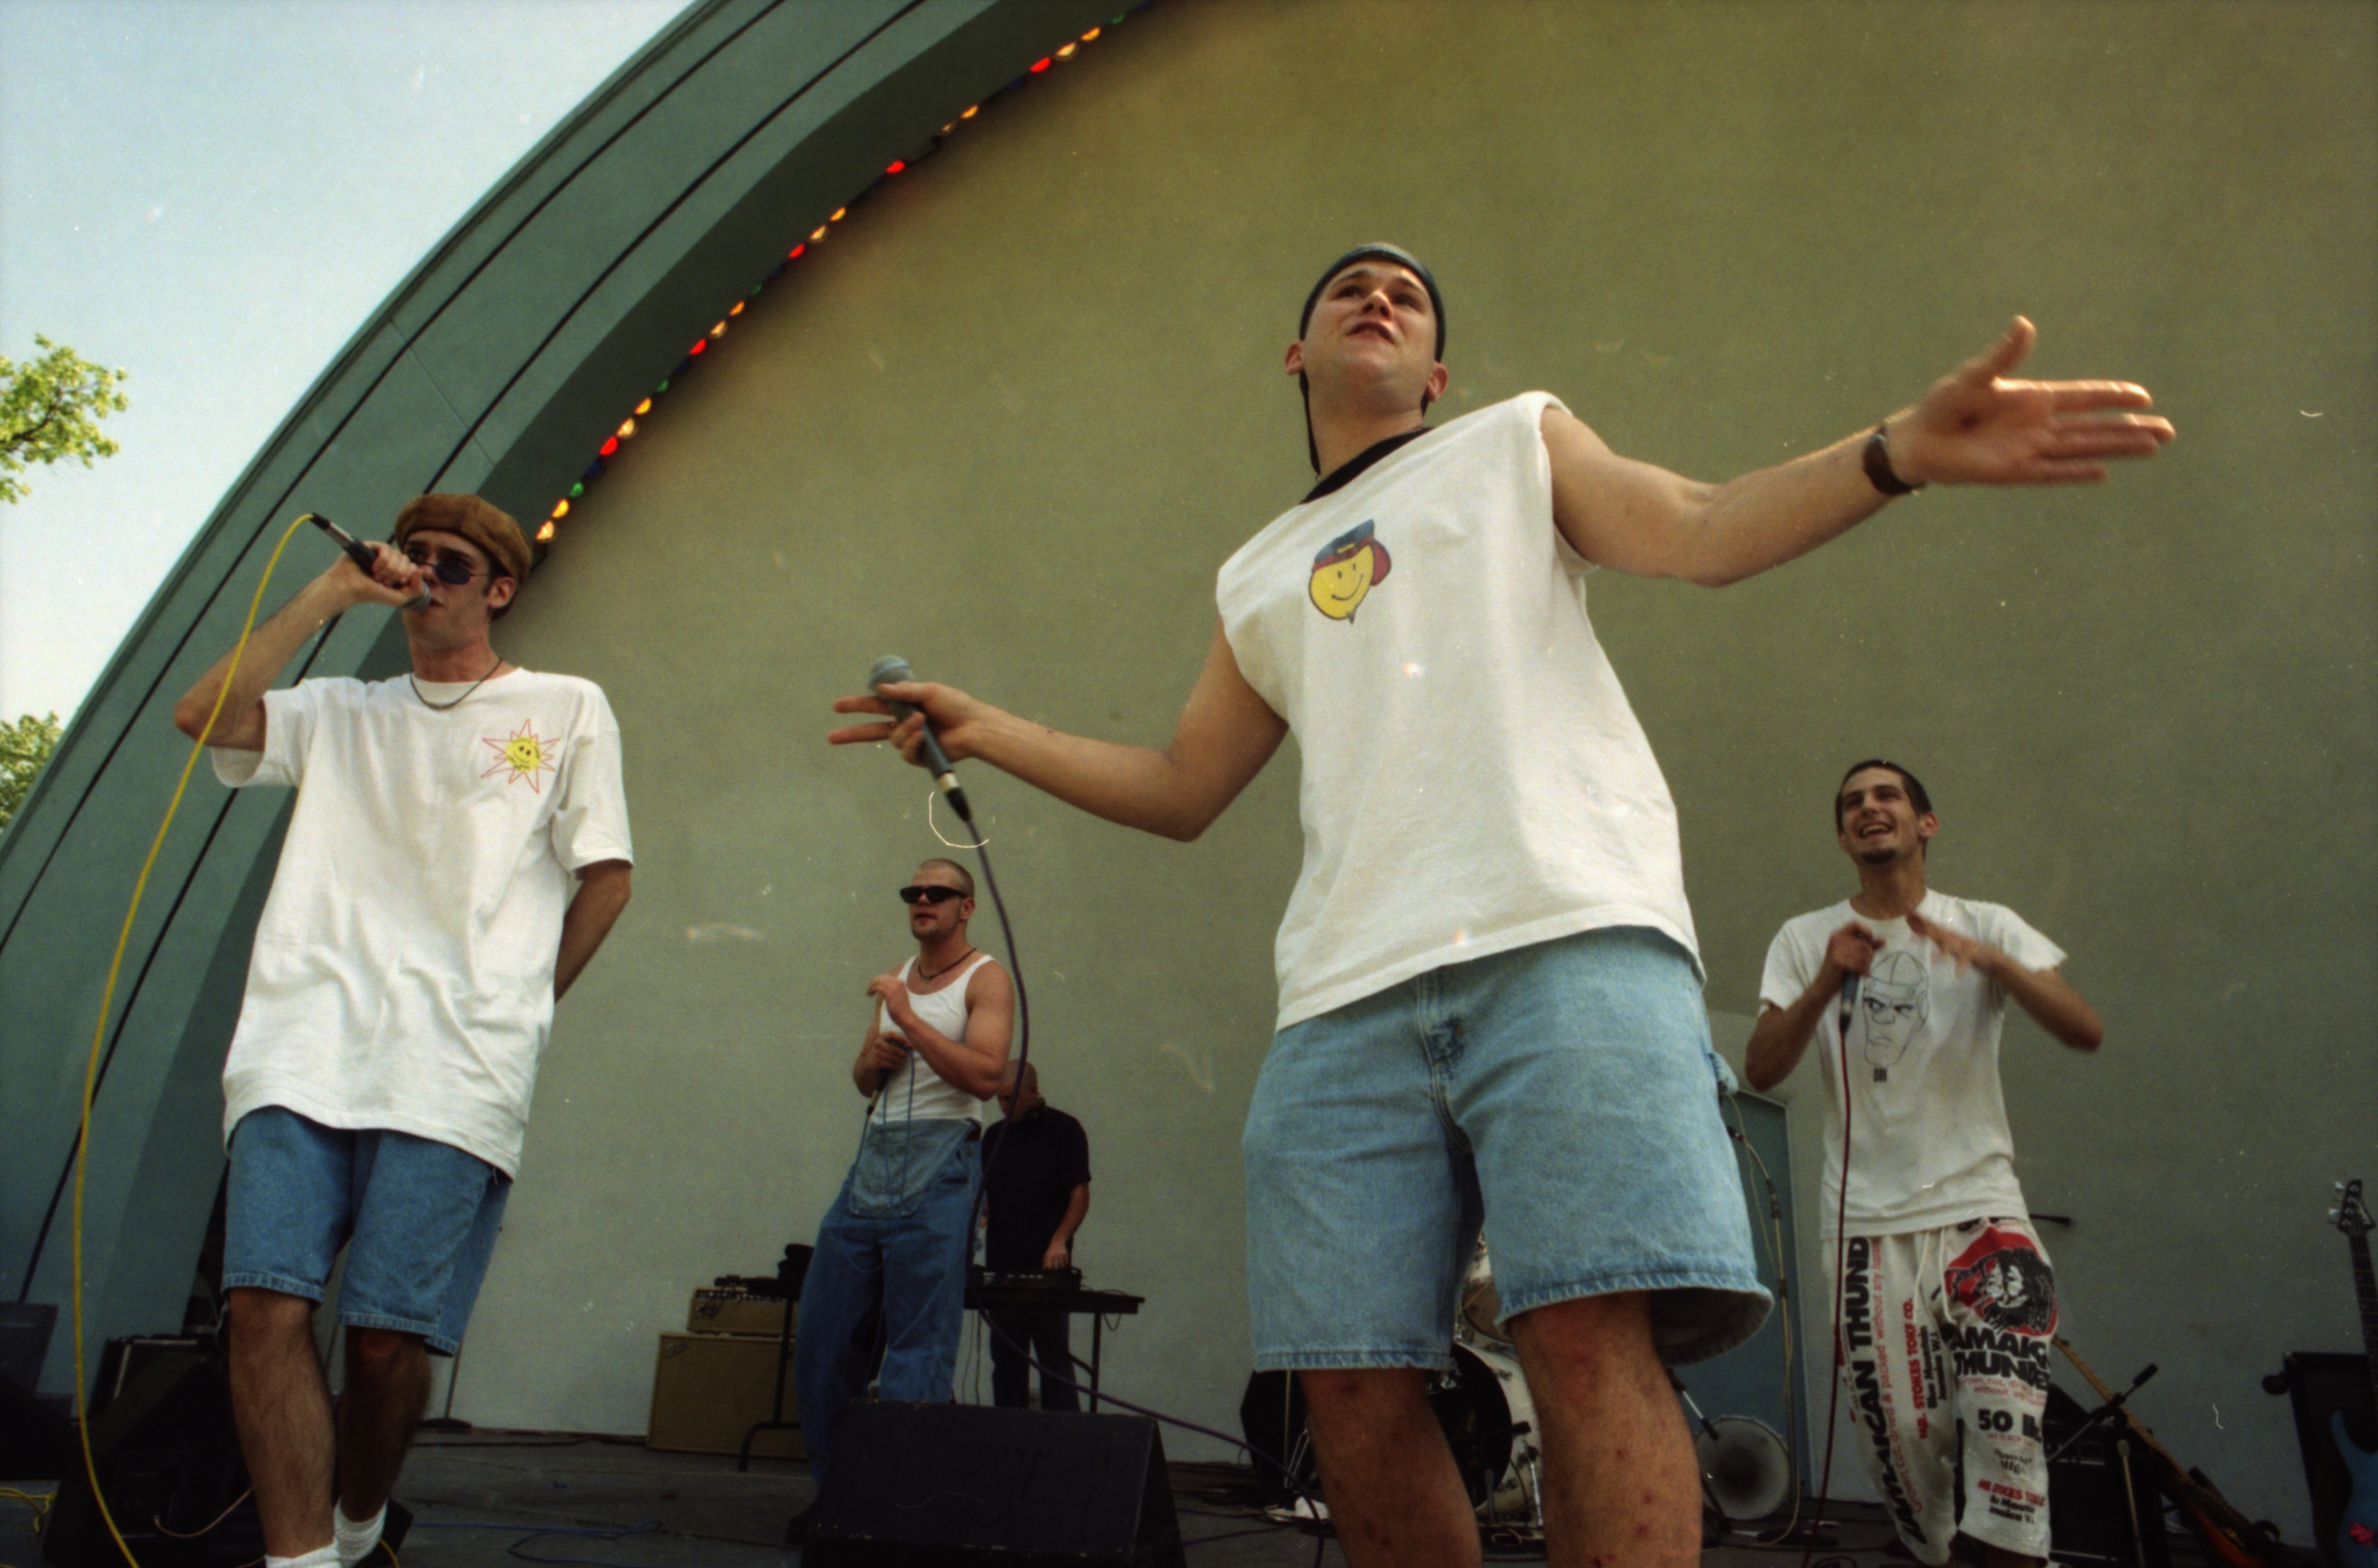 The Committee, a local hip-hop band, performs at Comstock, West Park, June 13,1996 image